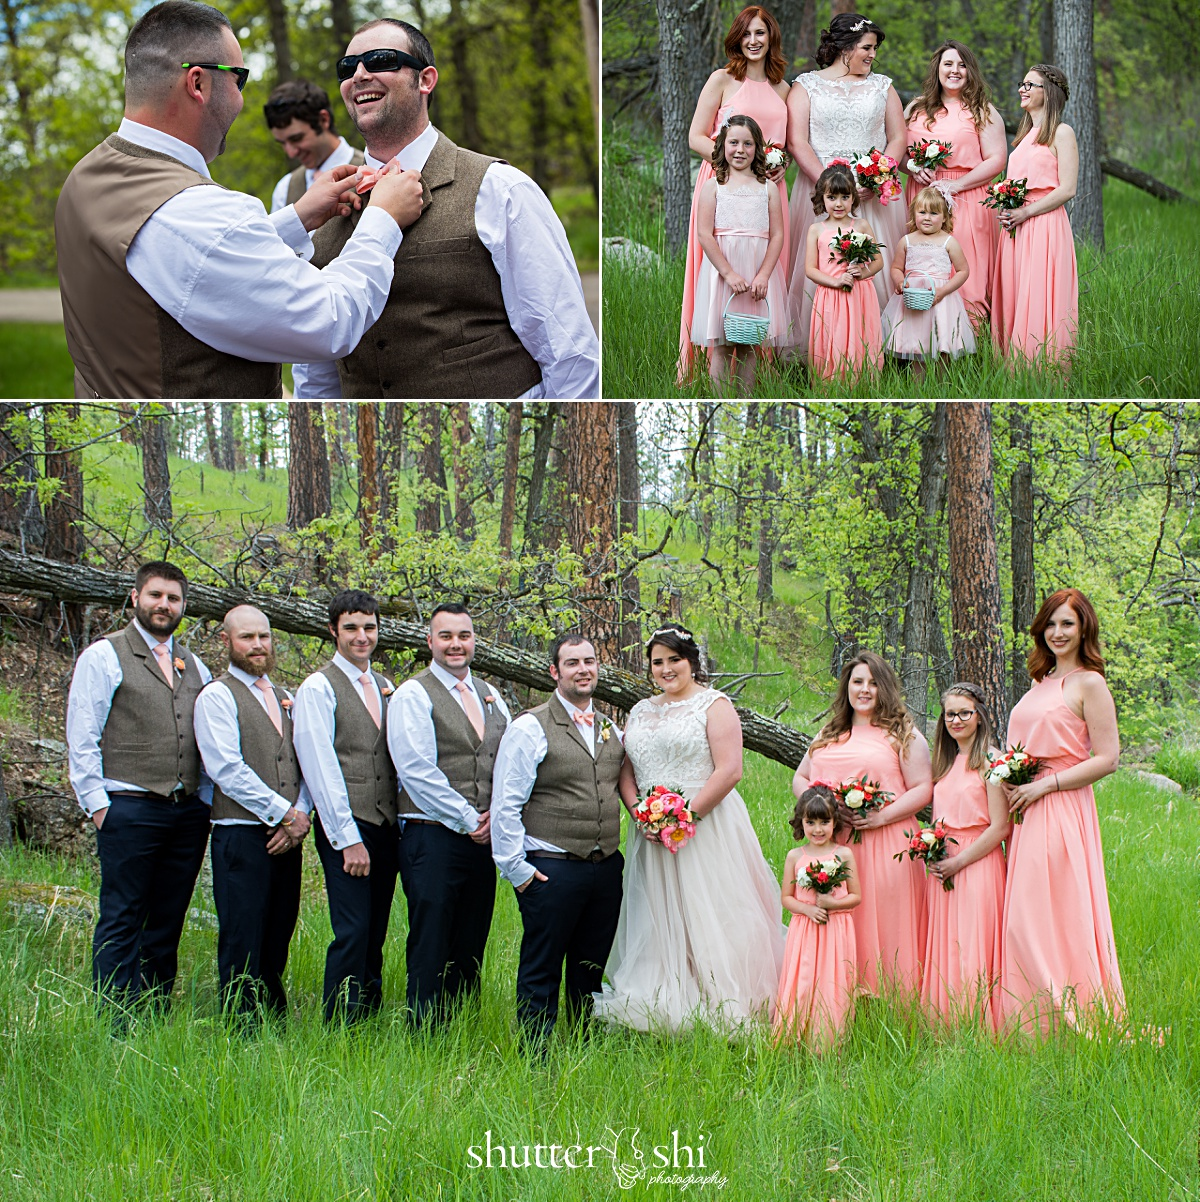 Clint-Tamra-Custer State Park Destination Wedding Spring Blush Pink Dresses Bridal Party South Dakota